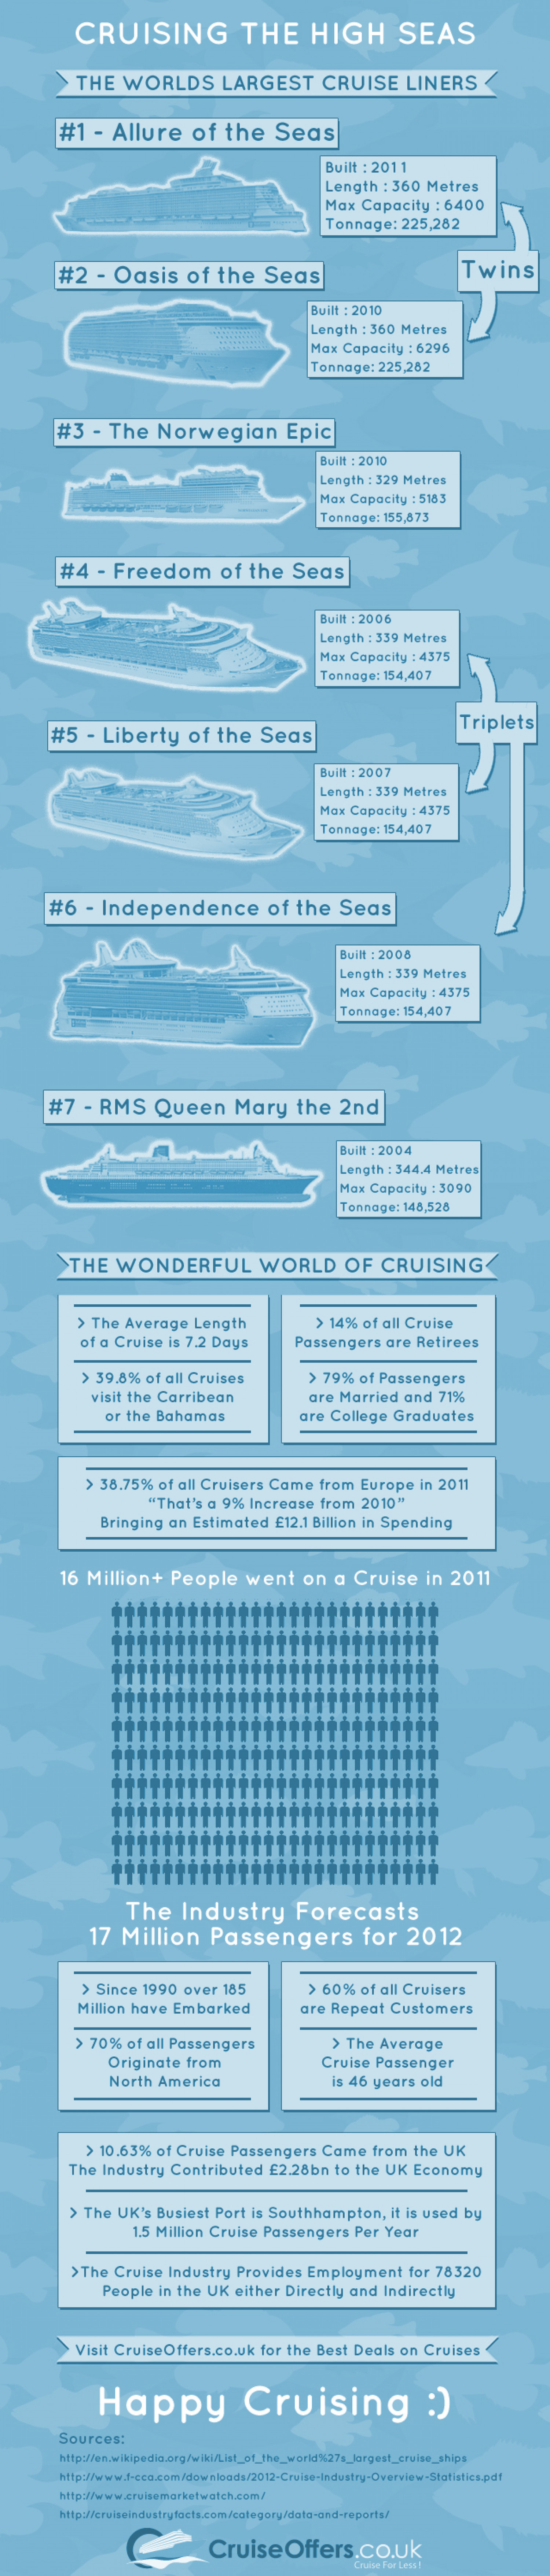 Cruising the High Seas Infographic